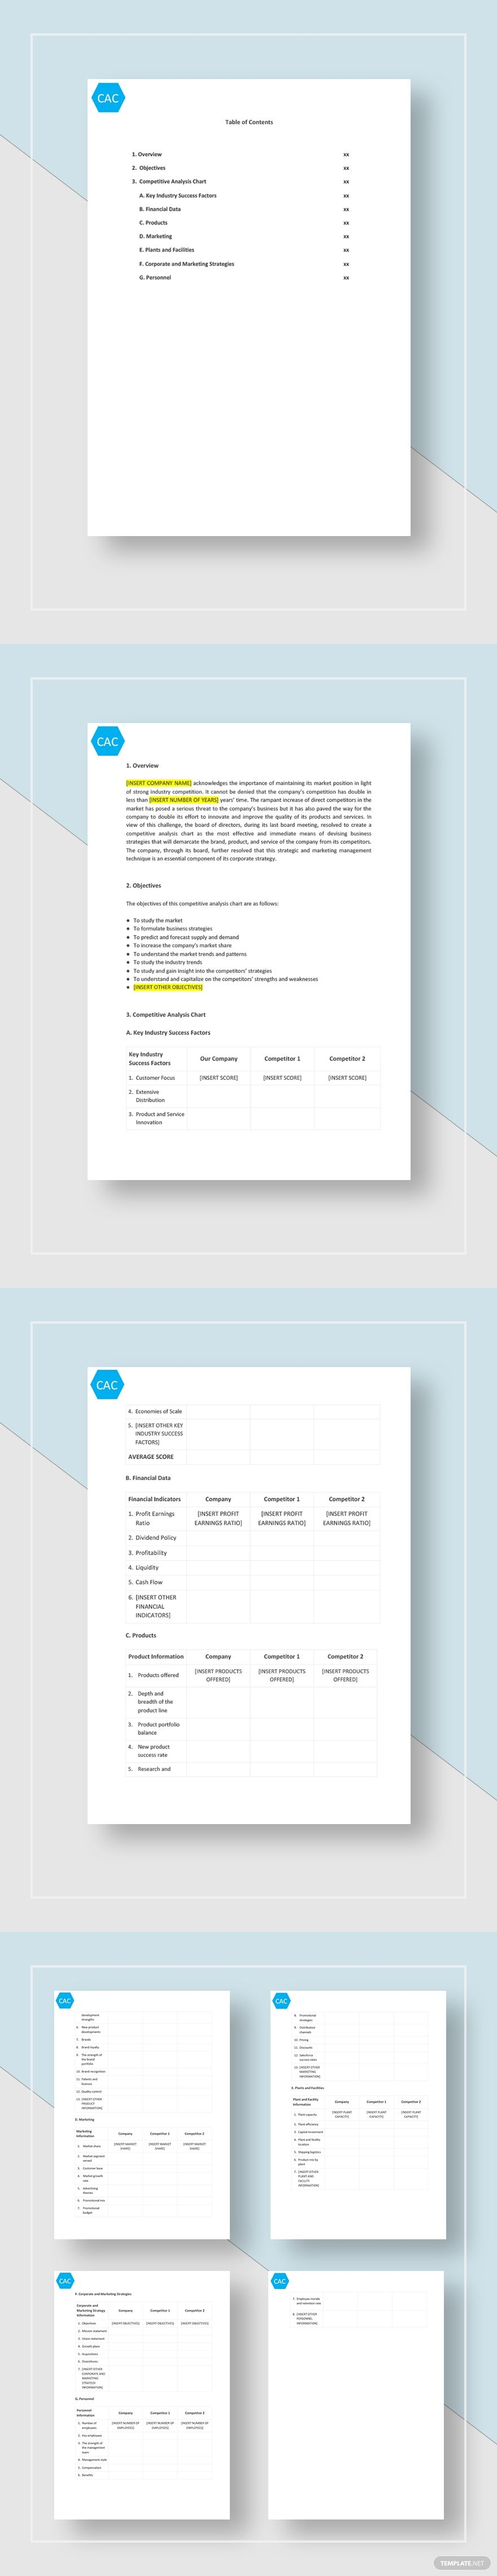 Competitive Analysis Chart Template Free Pdf Google Docs Word Template Net Competitive Analysis Templates Document Templates